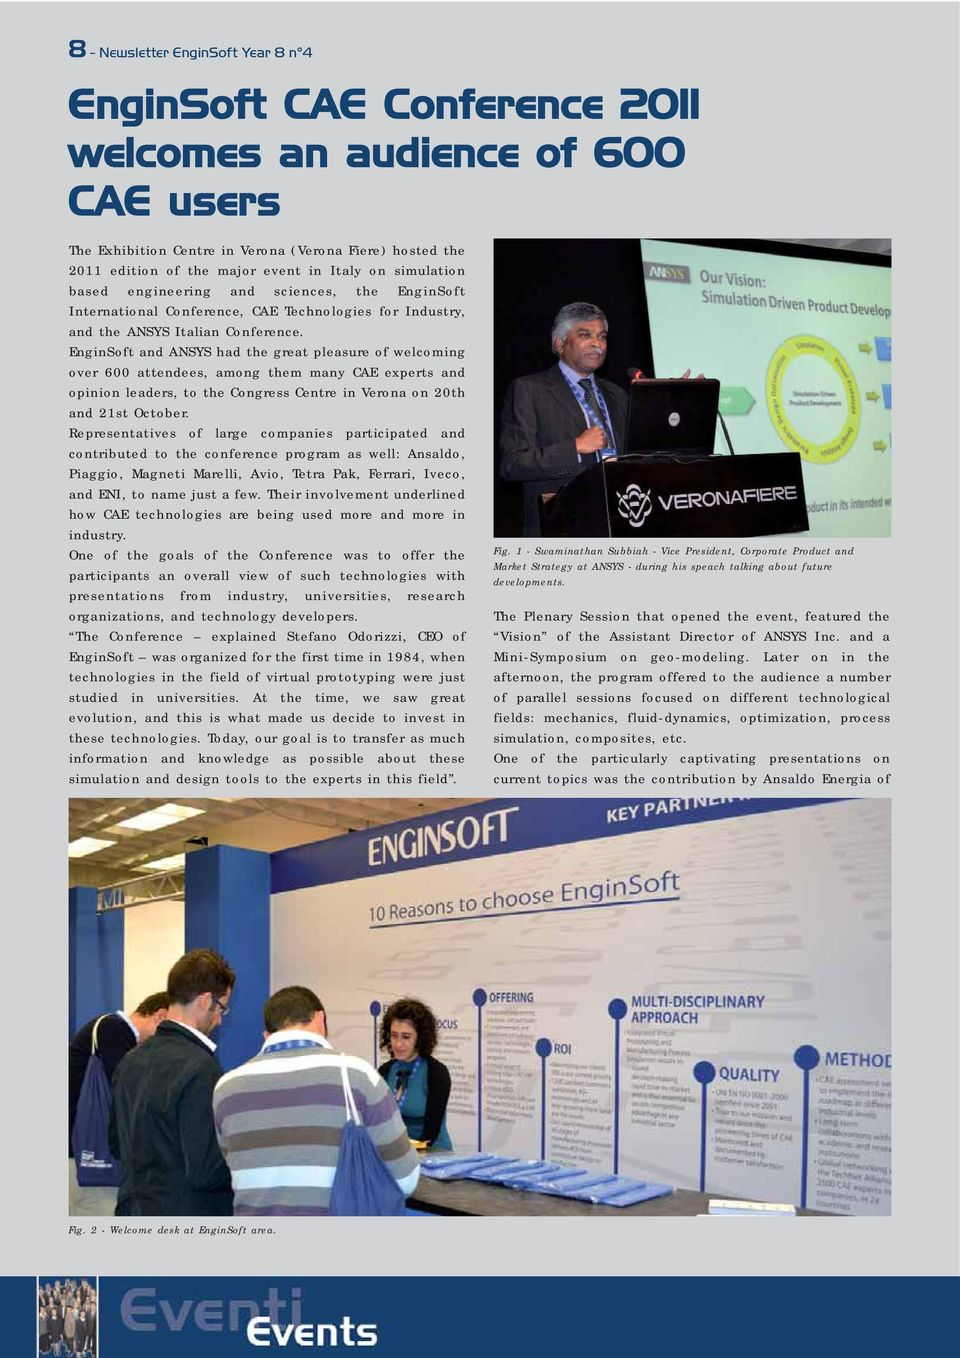 EnginSoft and ANSYS had the great pleasure of welcoming over 600 attendees, among them many CAE experts and opinion leaders, to the Congress Centre in Verona on 20th and 21st October.